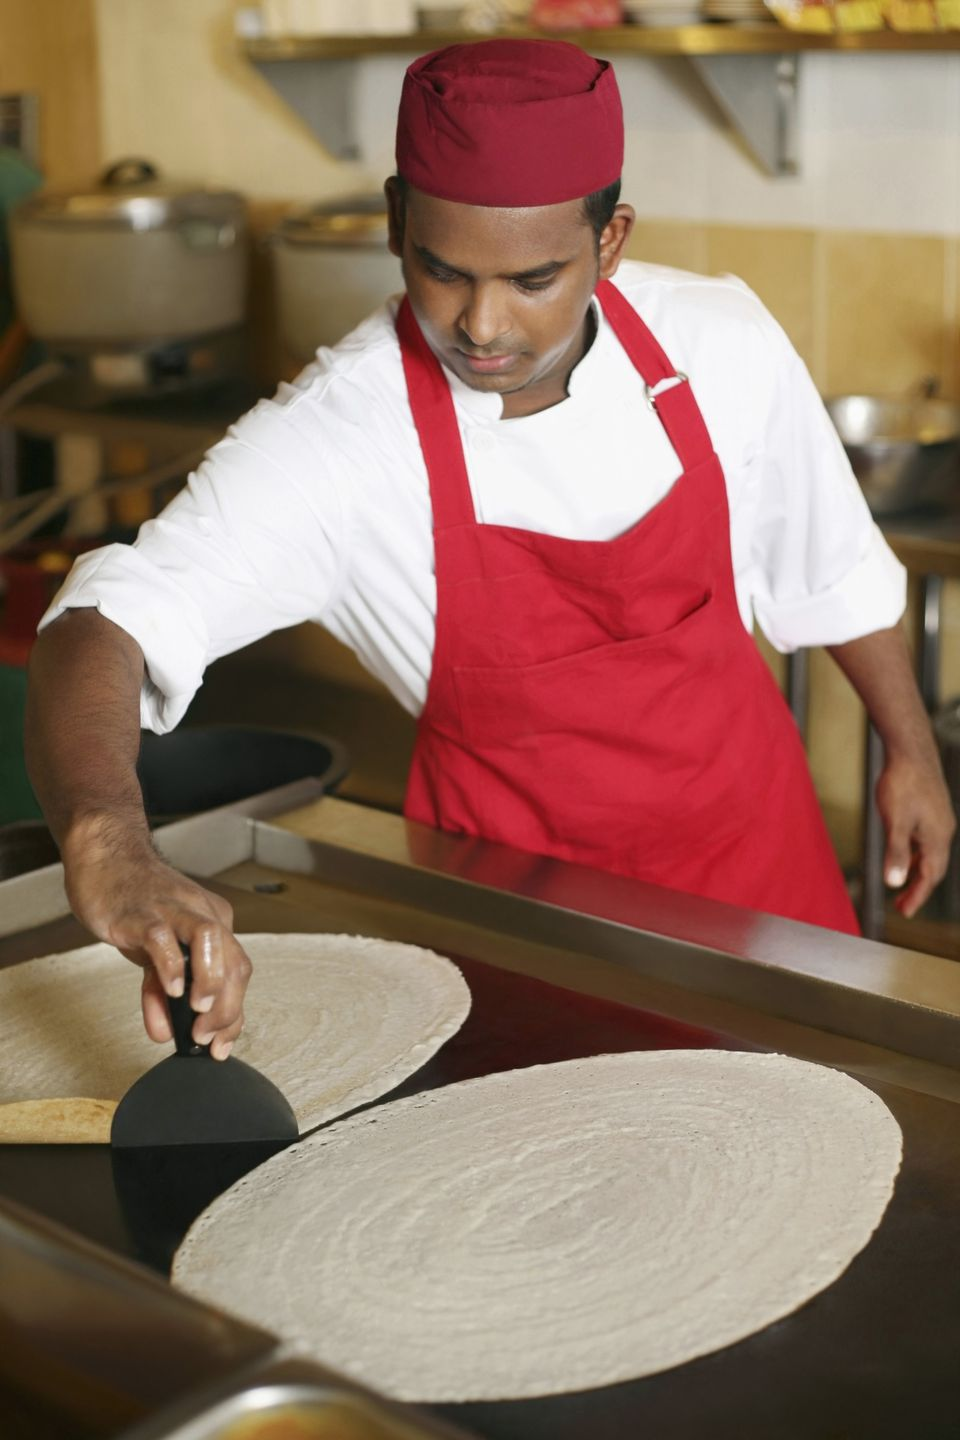 Making Dosa - Savory, Crispy Indian Pancakes